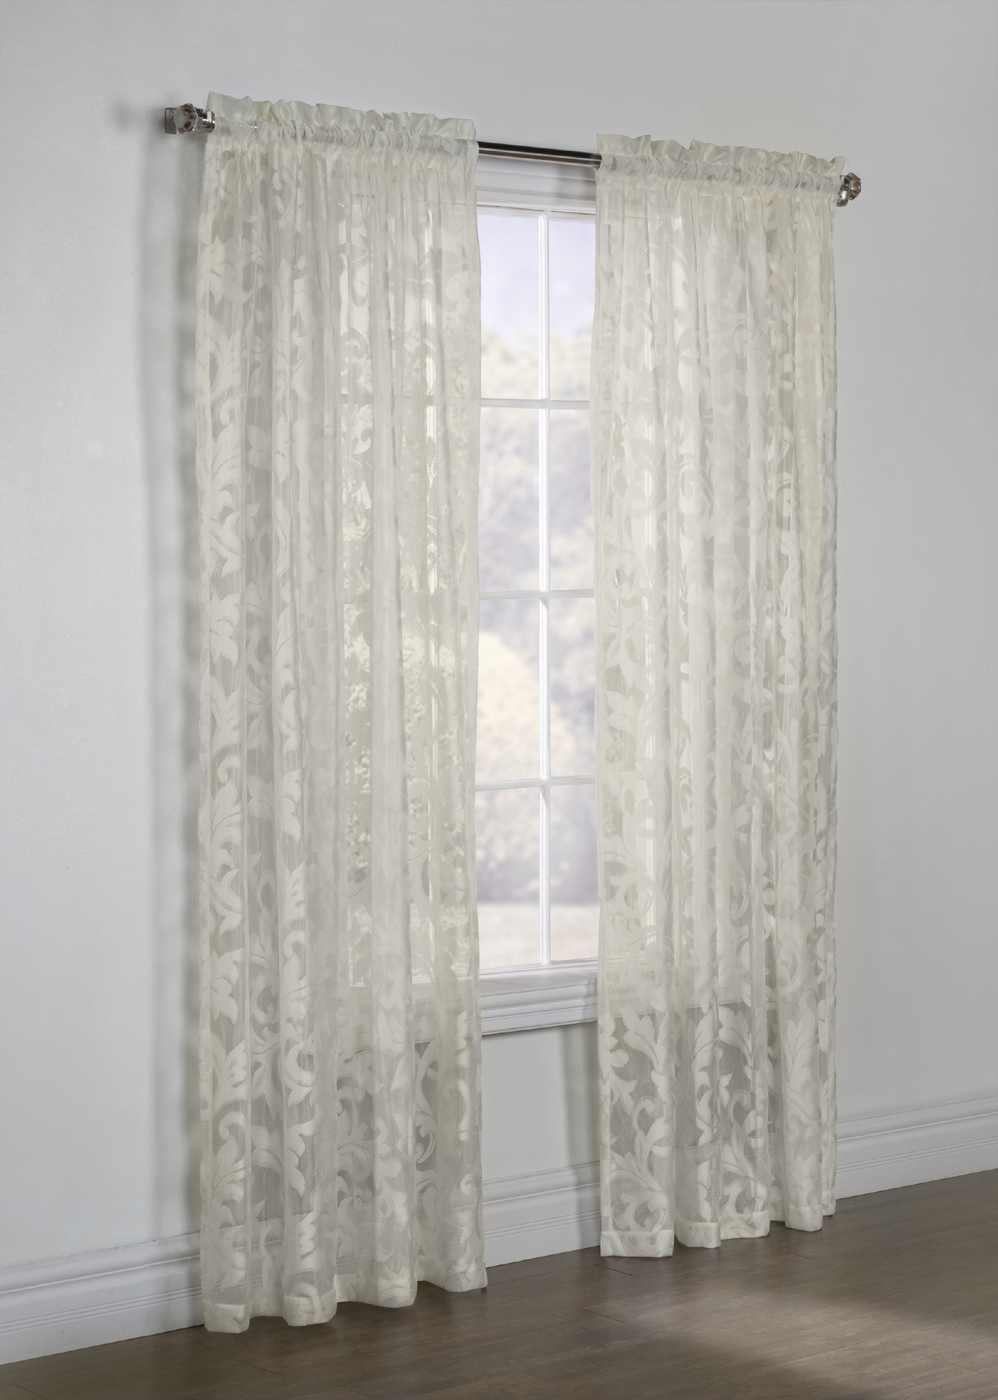 Jacqueline Boucle Lace Rod Pocket Panel Habitat